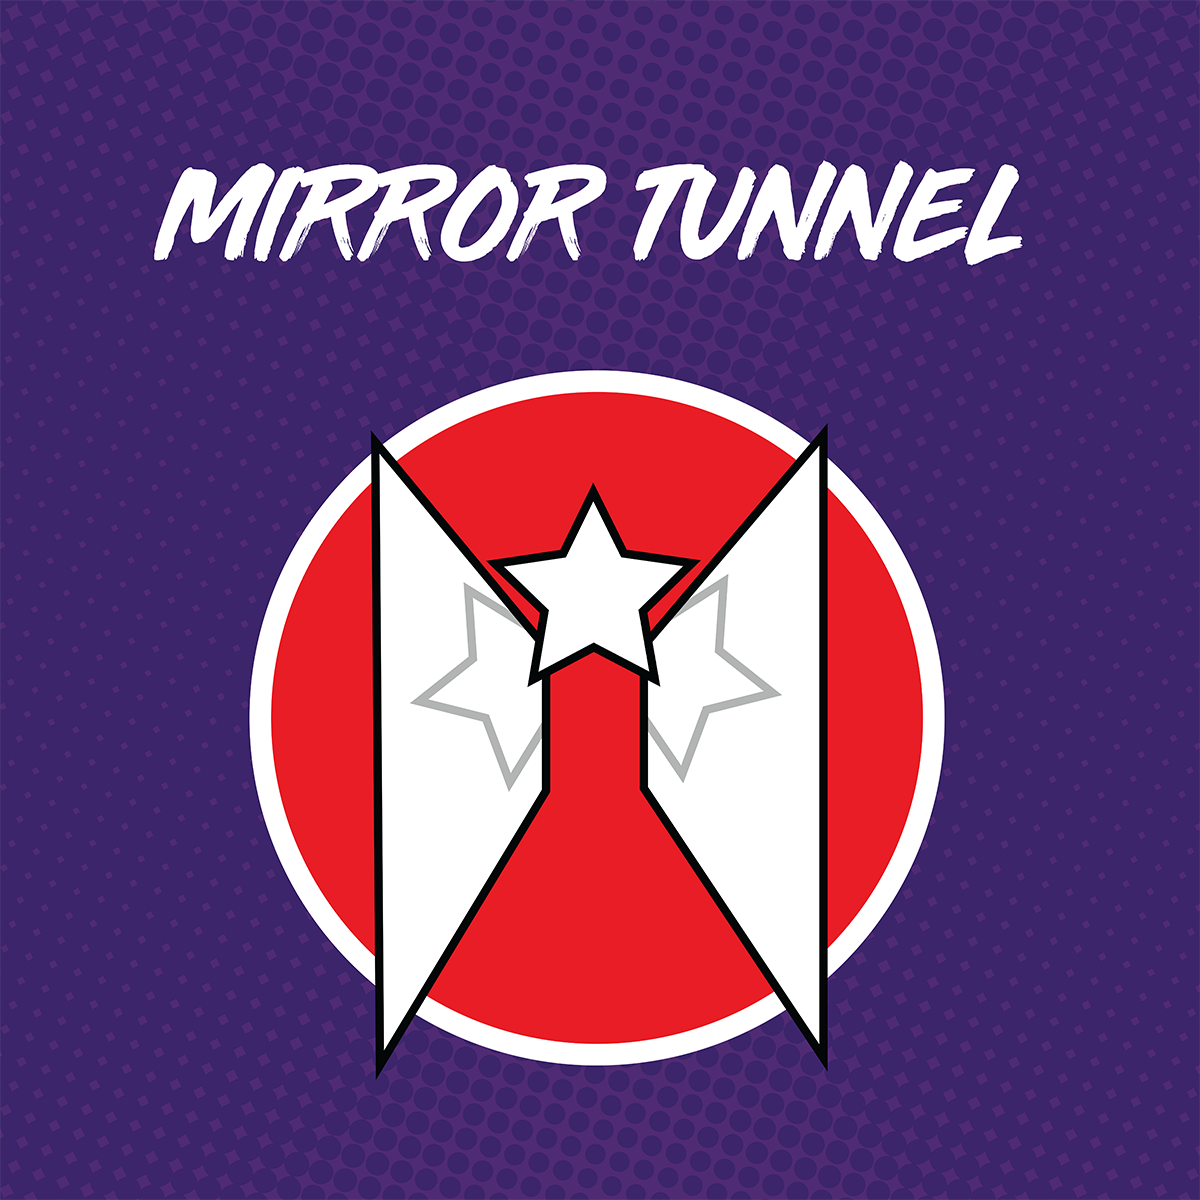 mirrortunnel.png